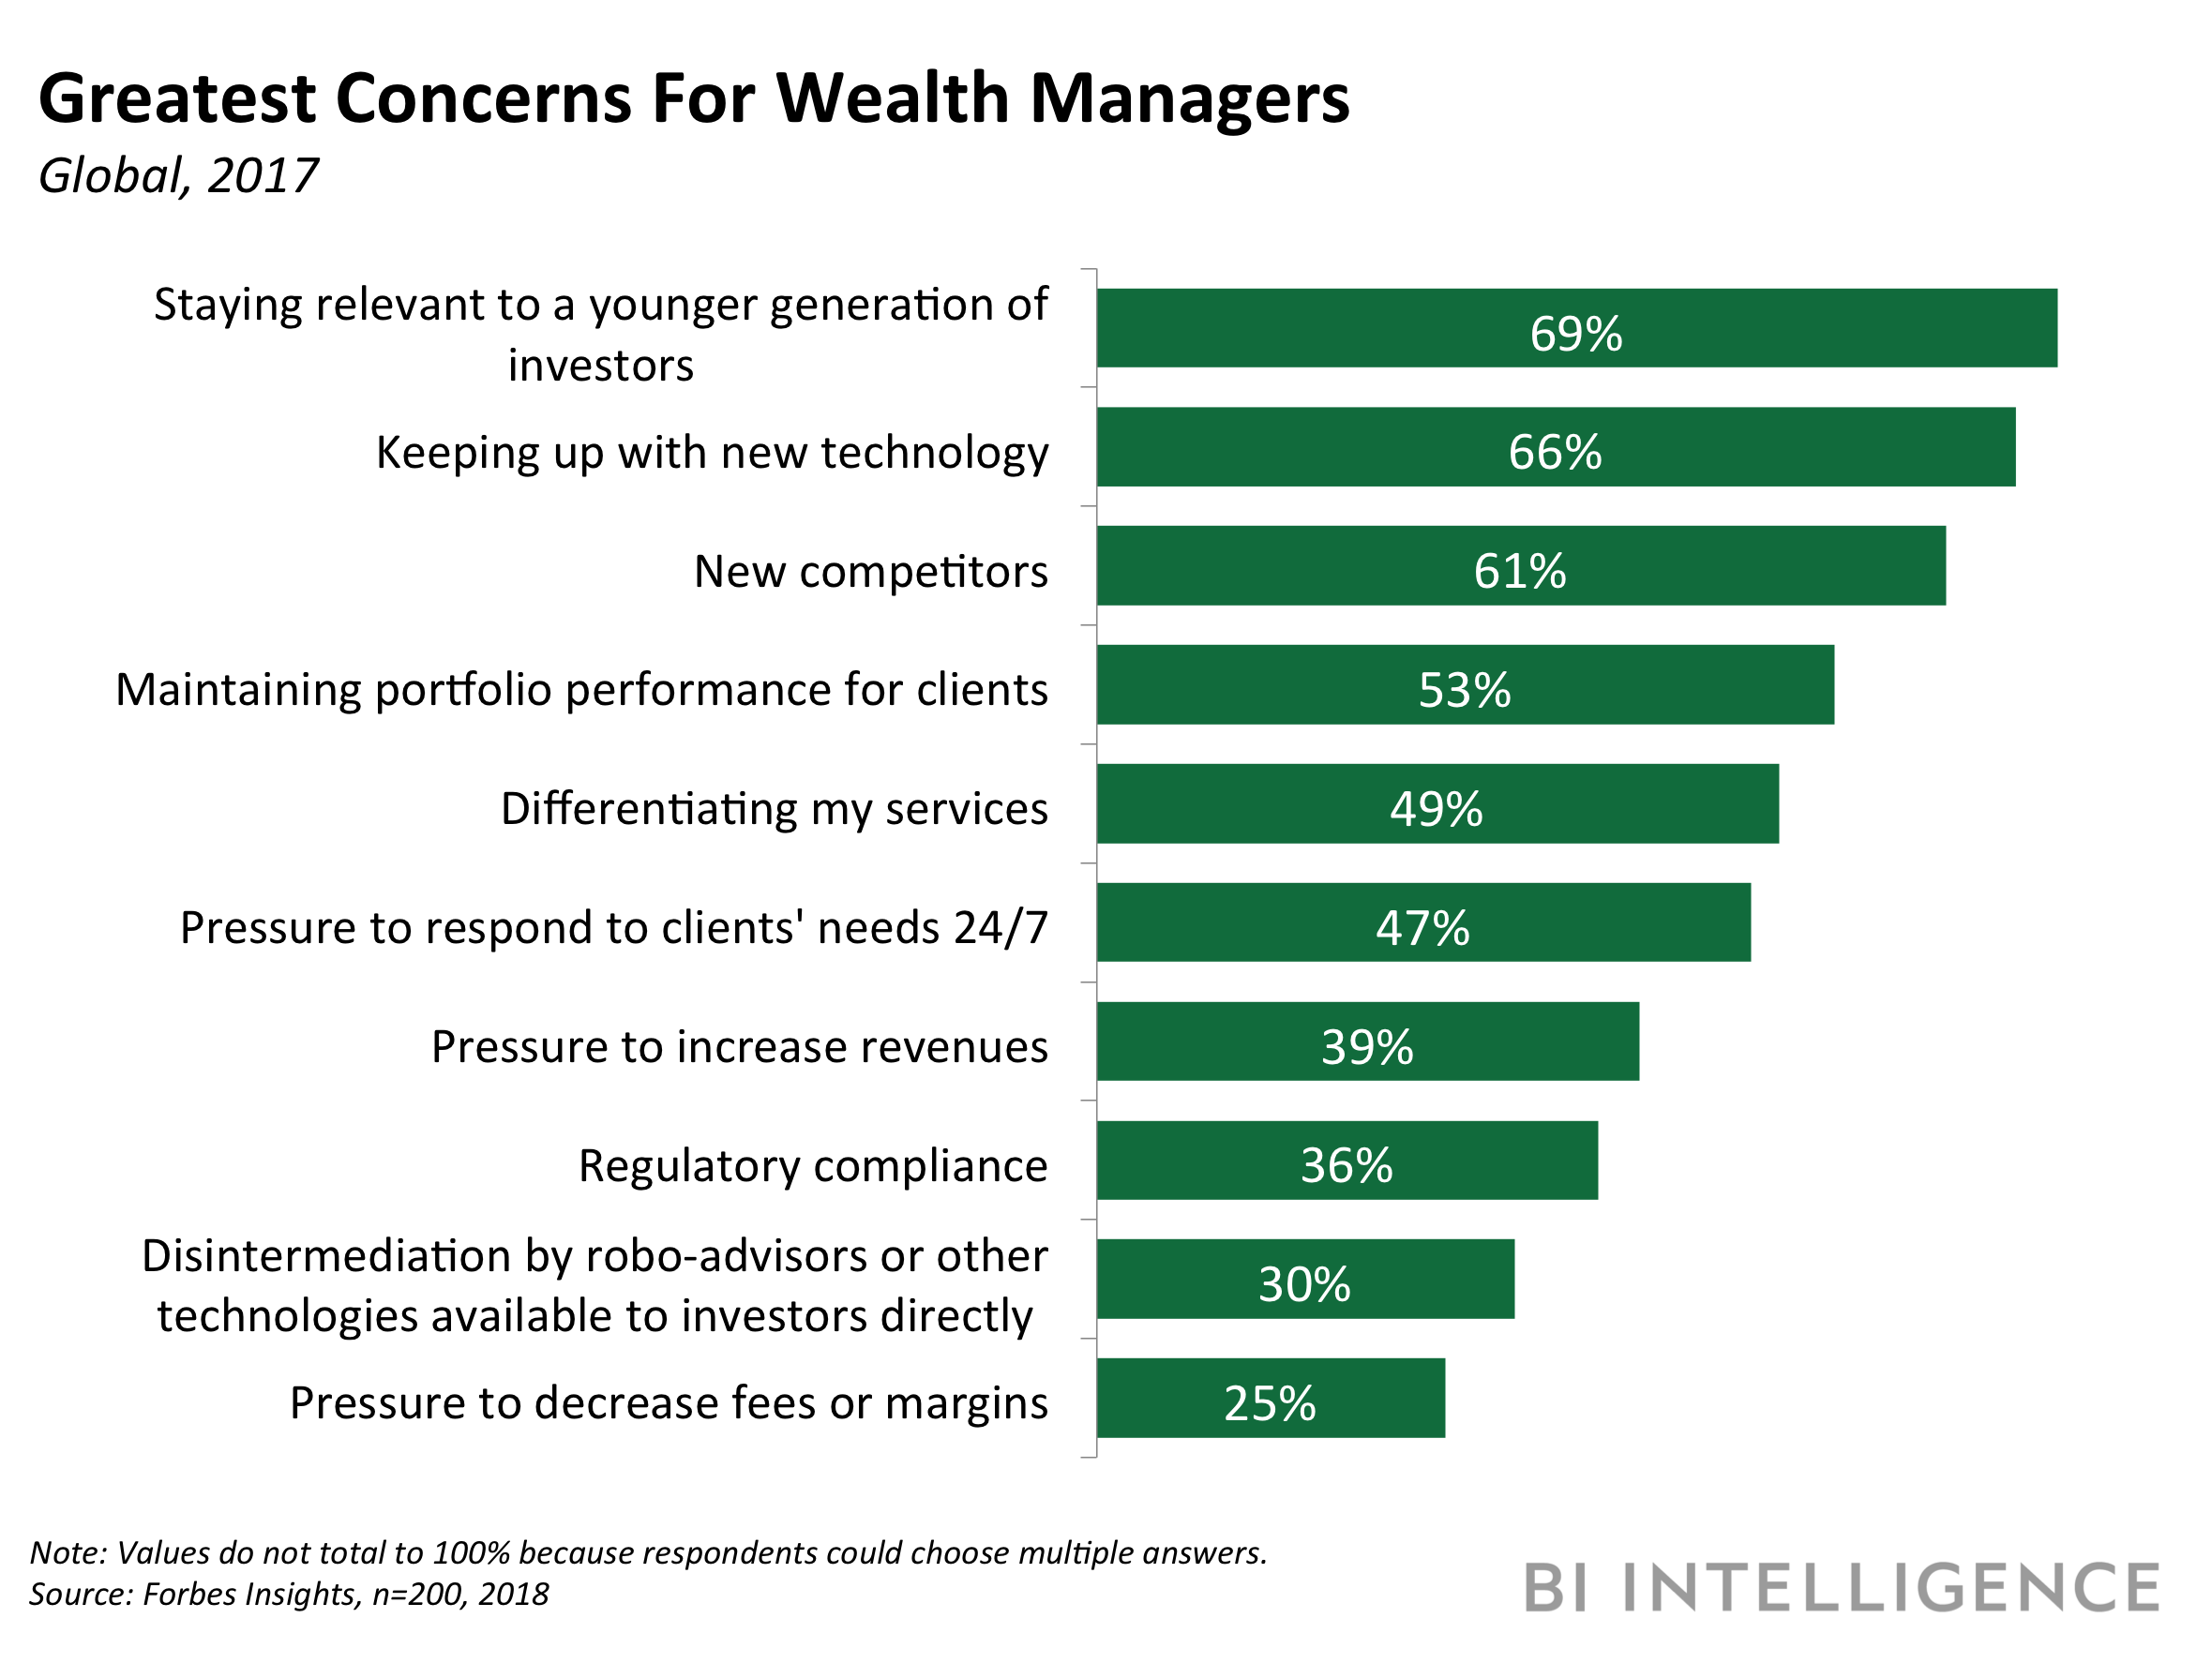 concerns for wealth managers